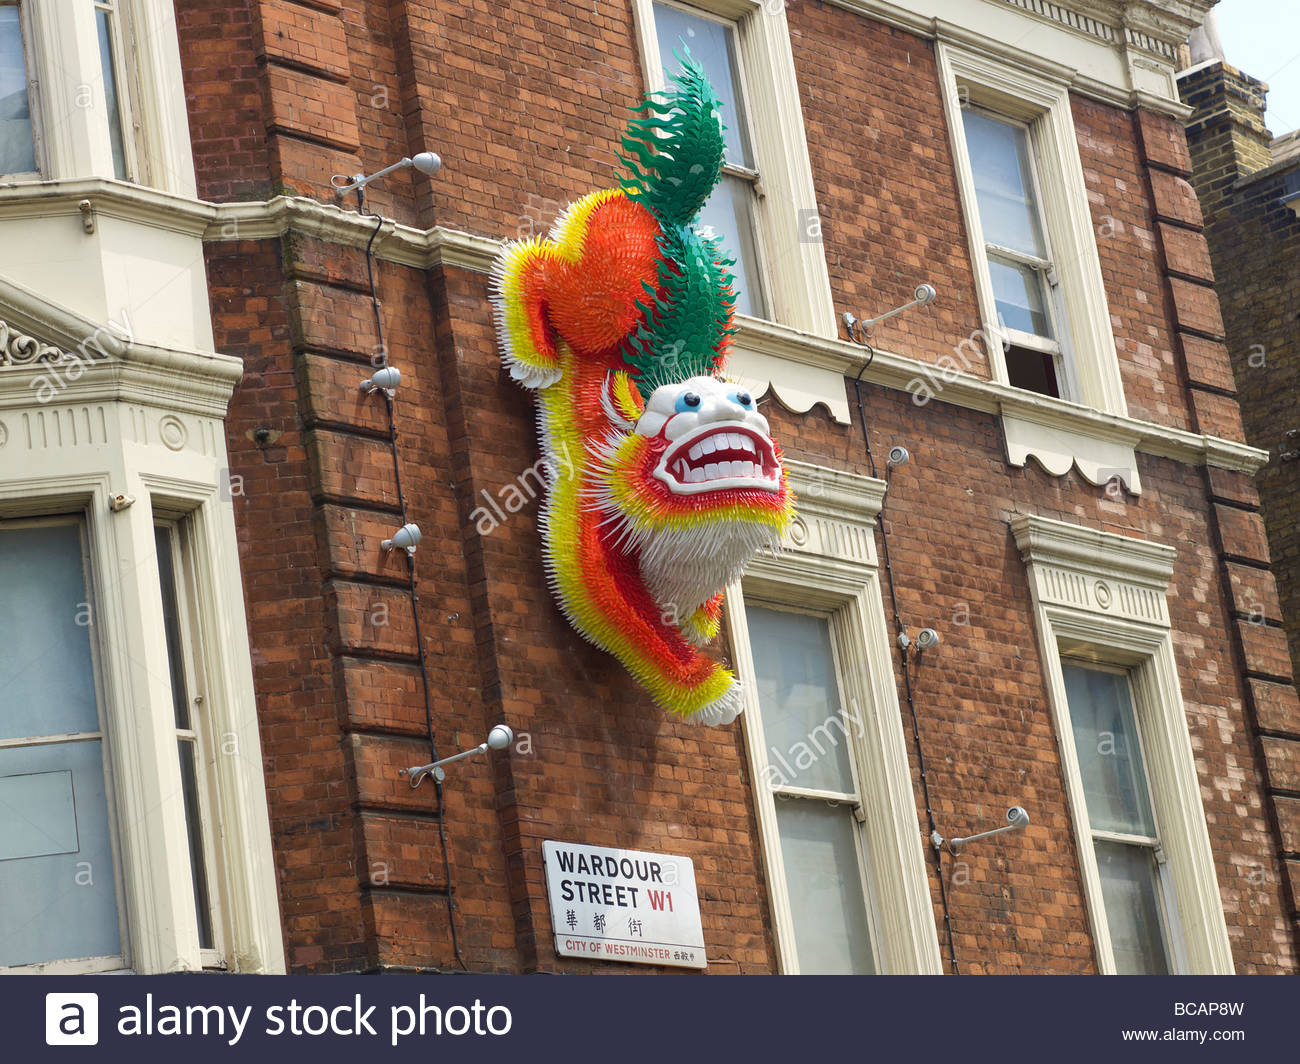 Chinese Dragon on the wall in Wardour Street in China Town in London - Stock Image